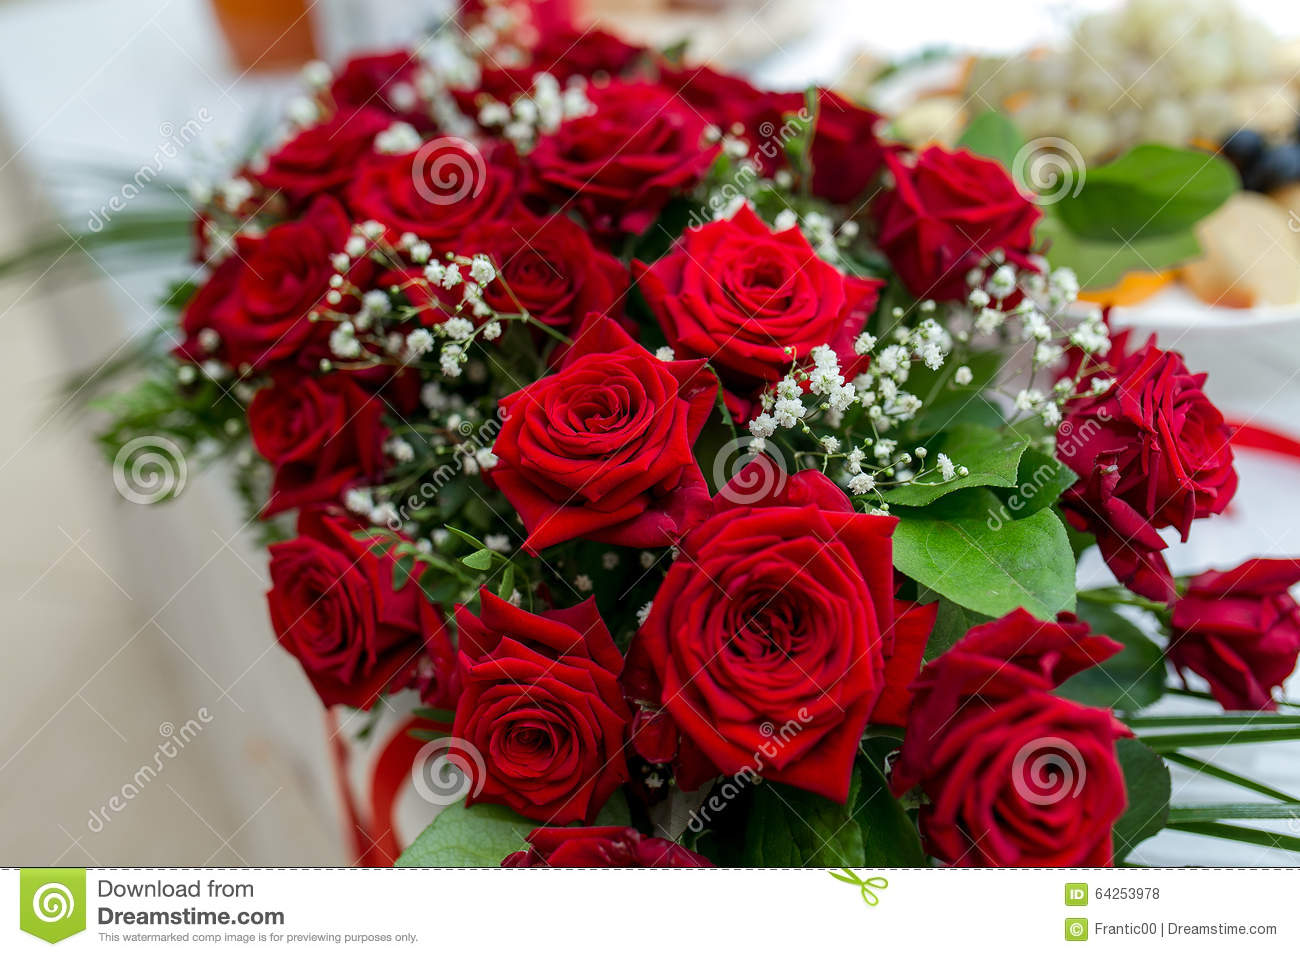 Fresh flowers decoration red roses at wedding table for Decoration or rose